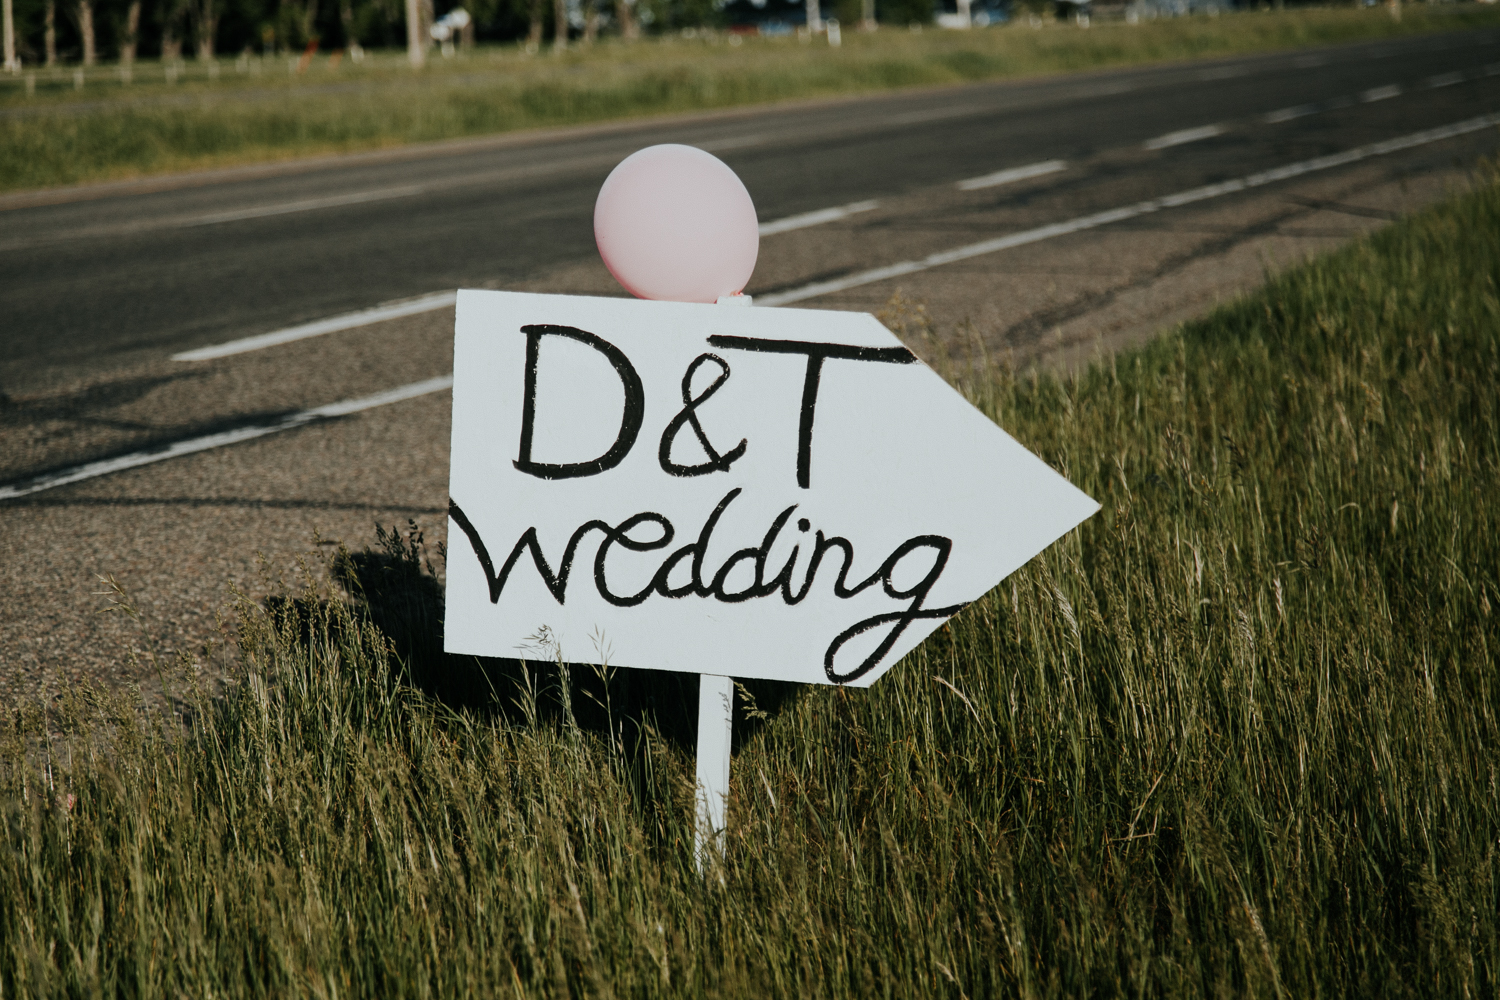 lethbridge-wedding-photographer-love-and-be-loved-photography-dan-tynnea-picture-image-photo-199.jpg